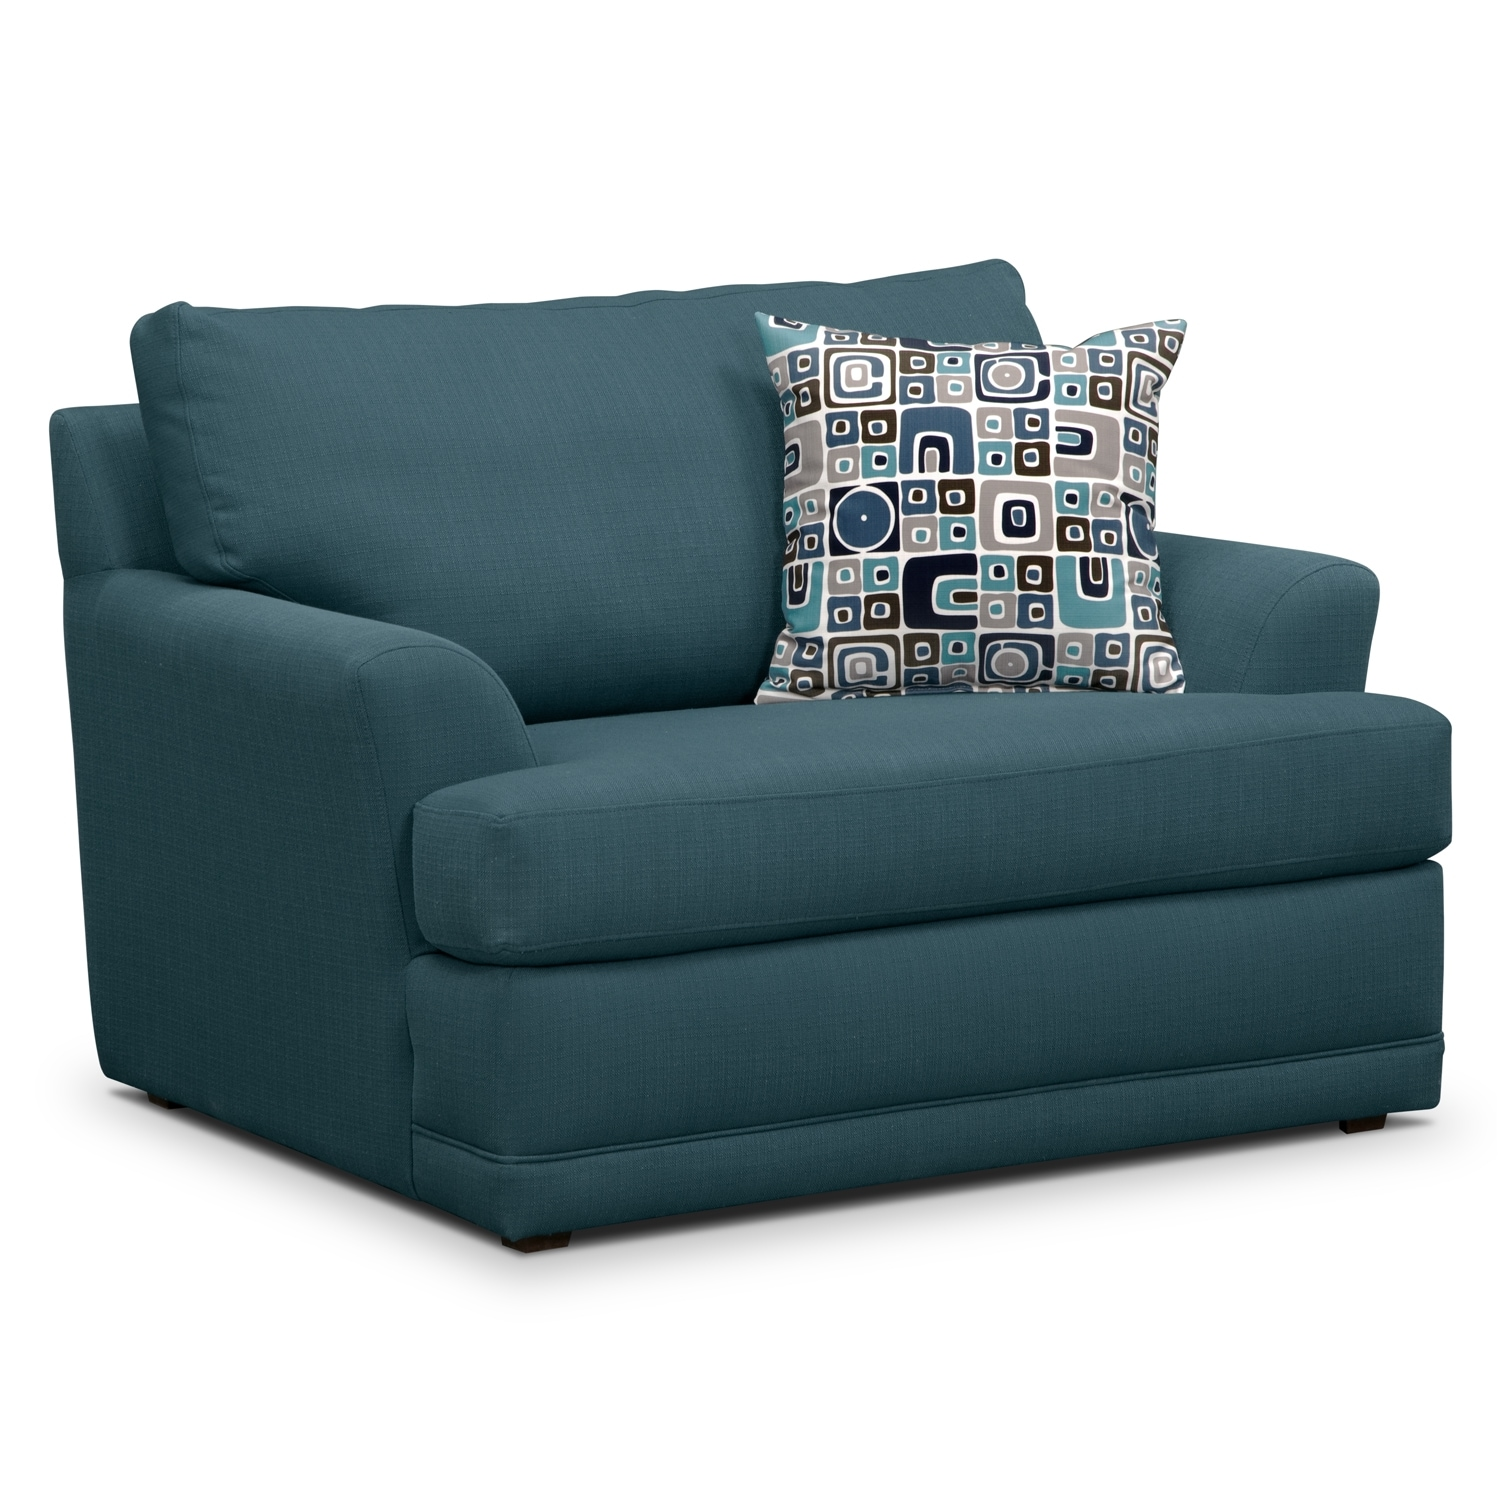 Living Room Furniture - Kismet Chair and a Half - Teal